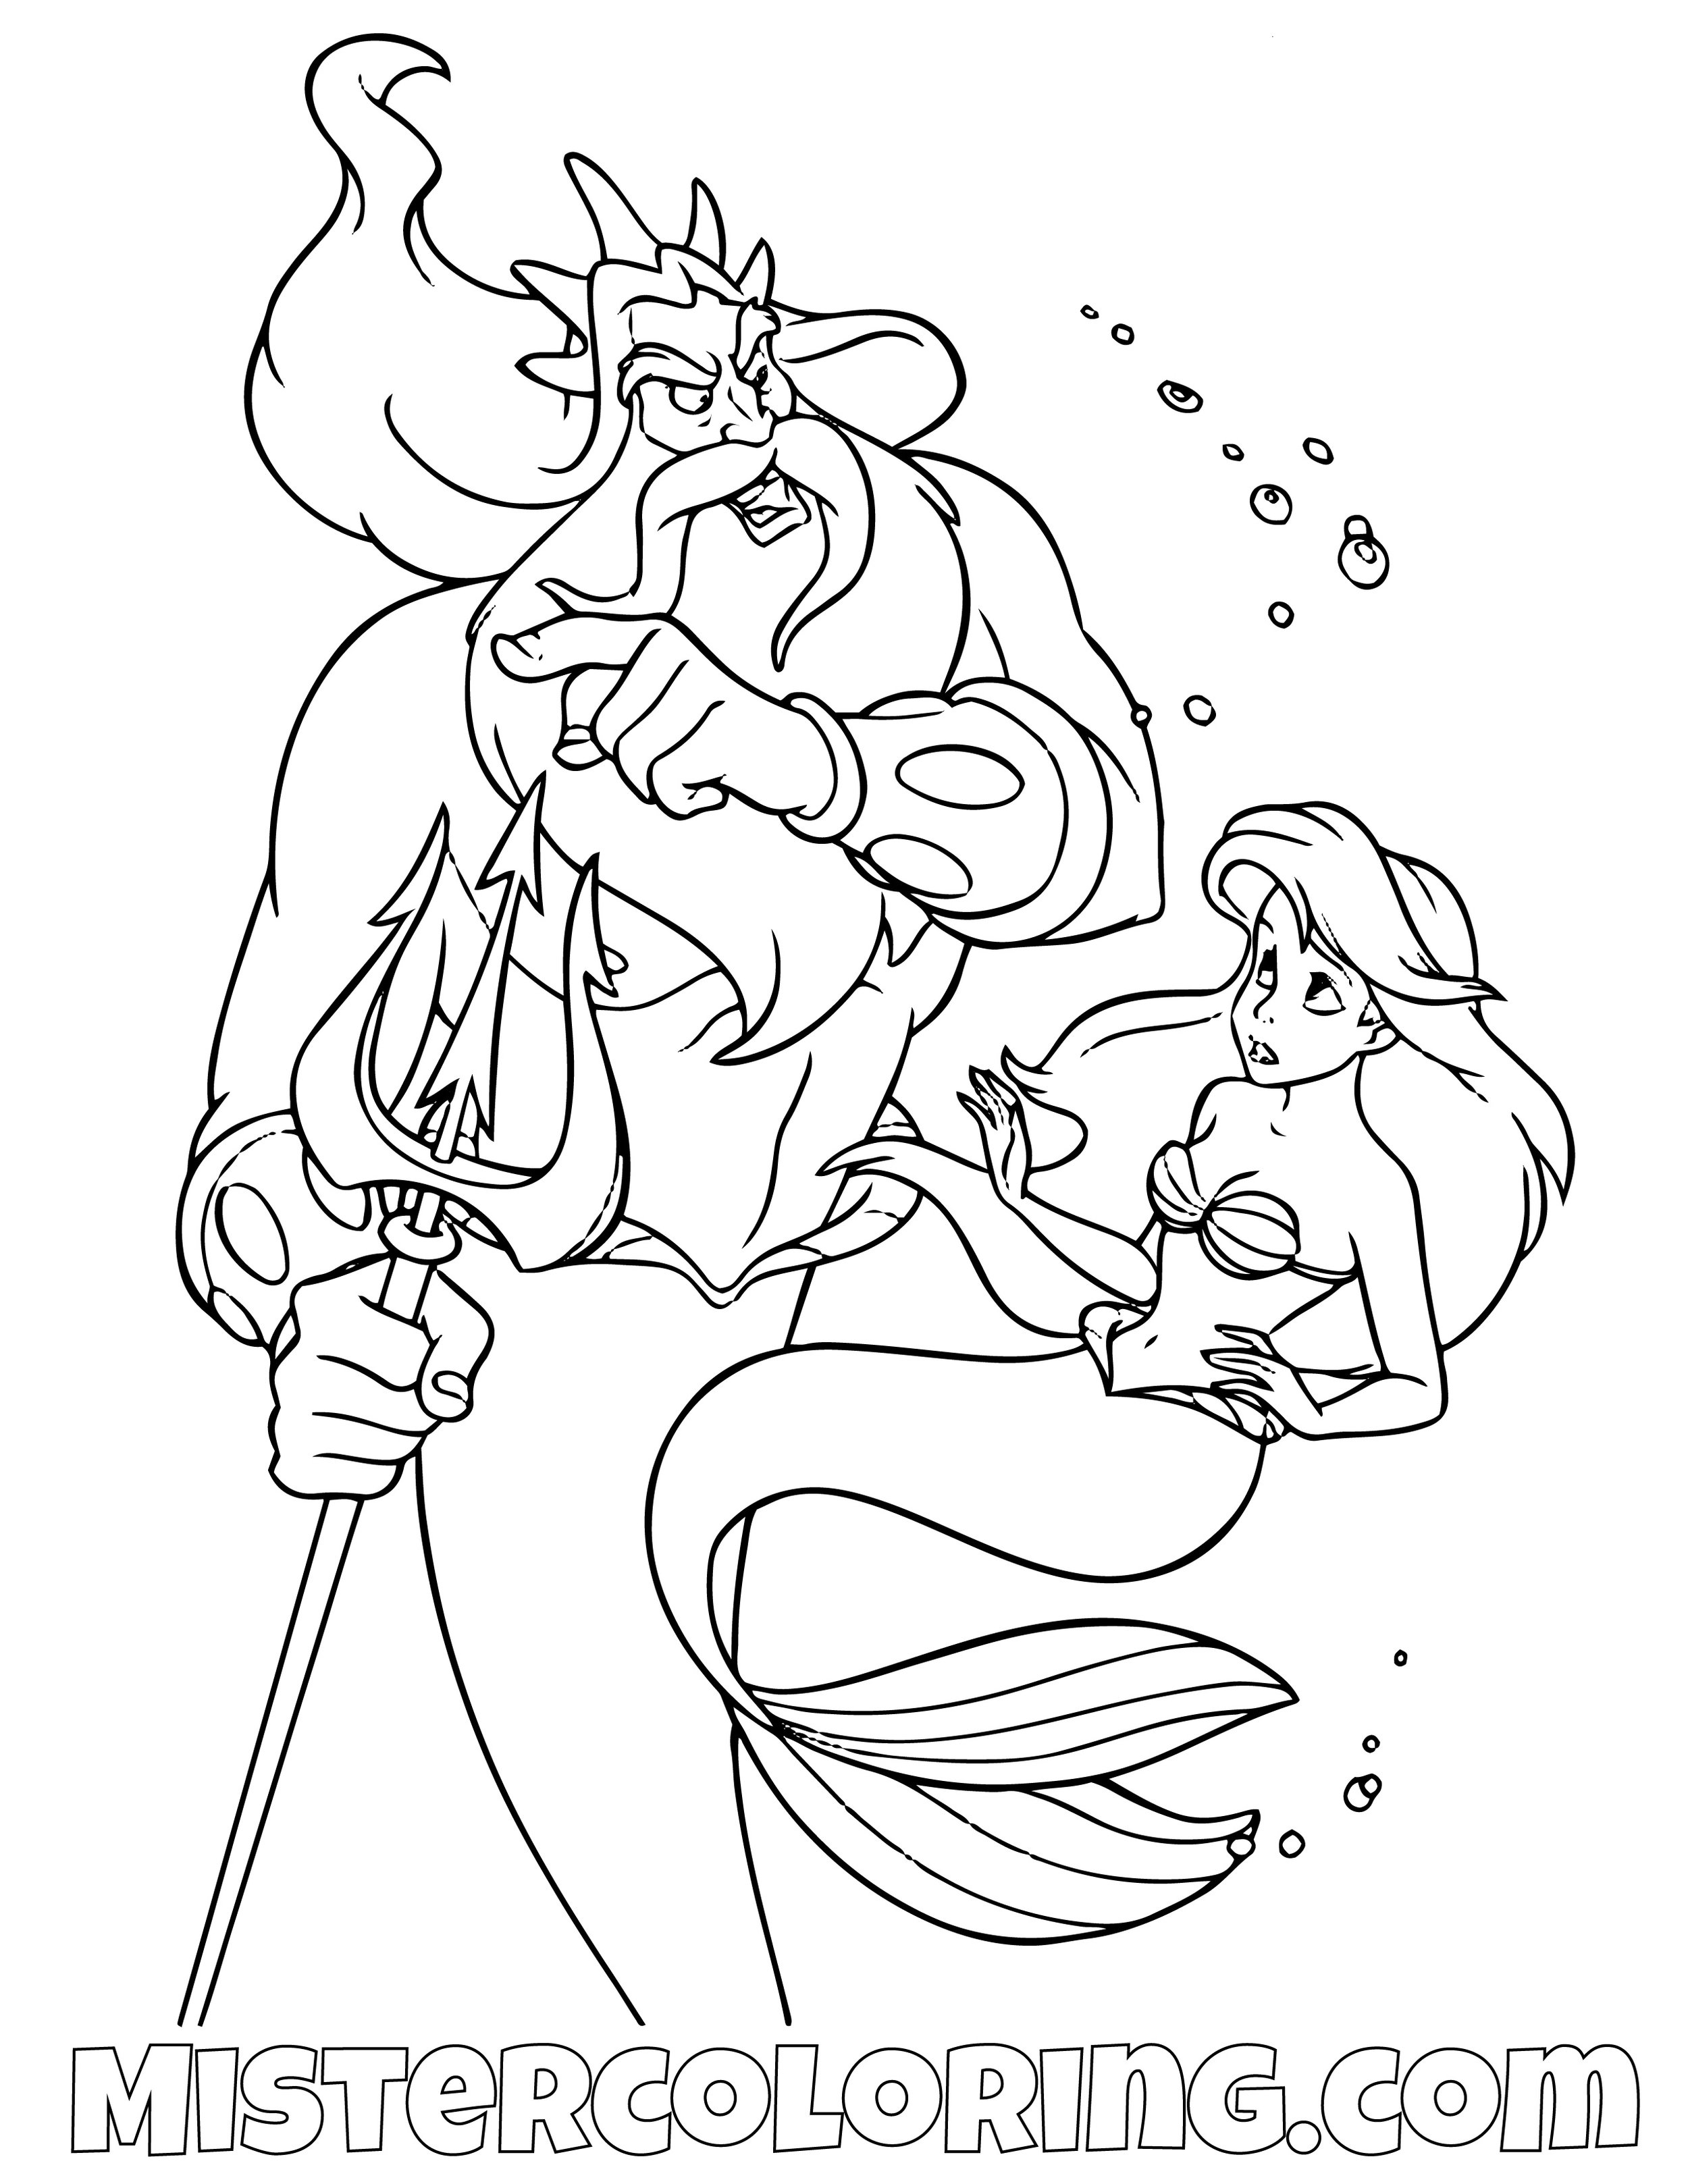 Ariel the Little Mermaid sitting on a rock coloring page   Little ...   1294x1000